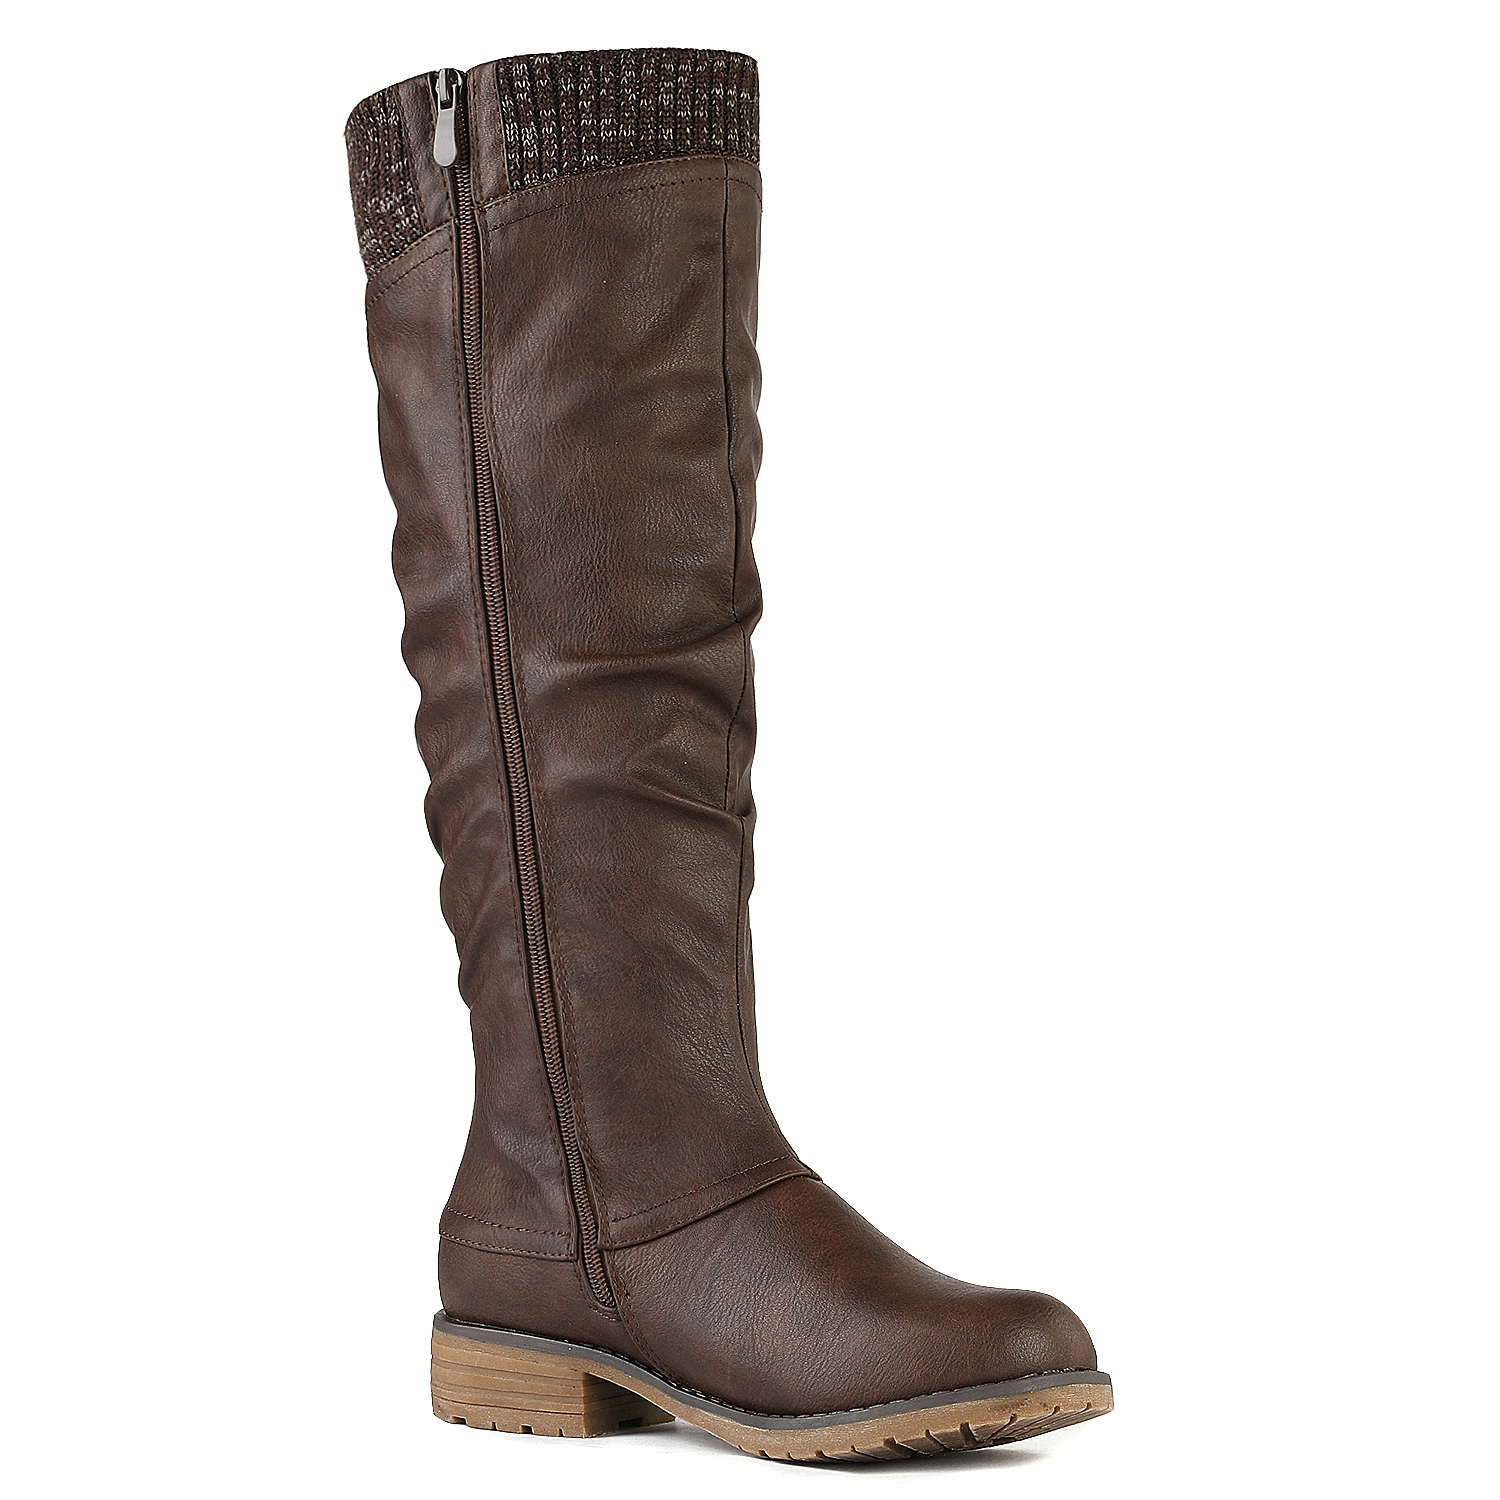 DREAM-PAIRS-Womens-DEPP-Cowgirl-Soft-PU-Leather-Combat-Knee-High-Riding-Boots thumbnail 15